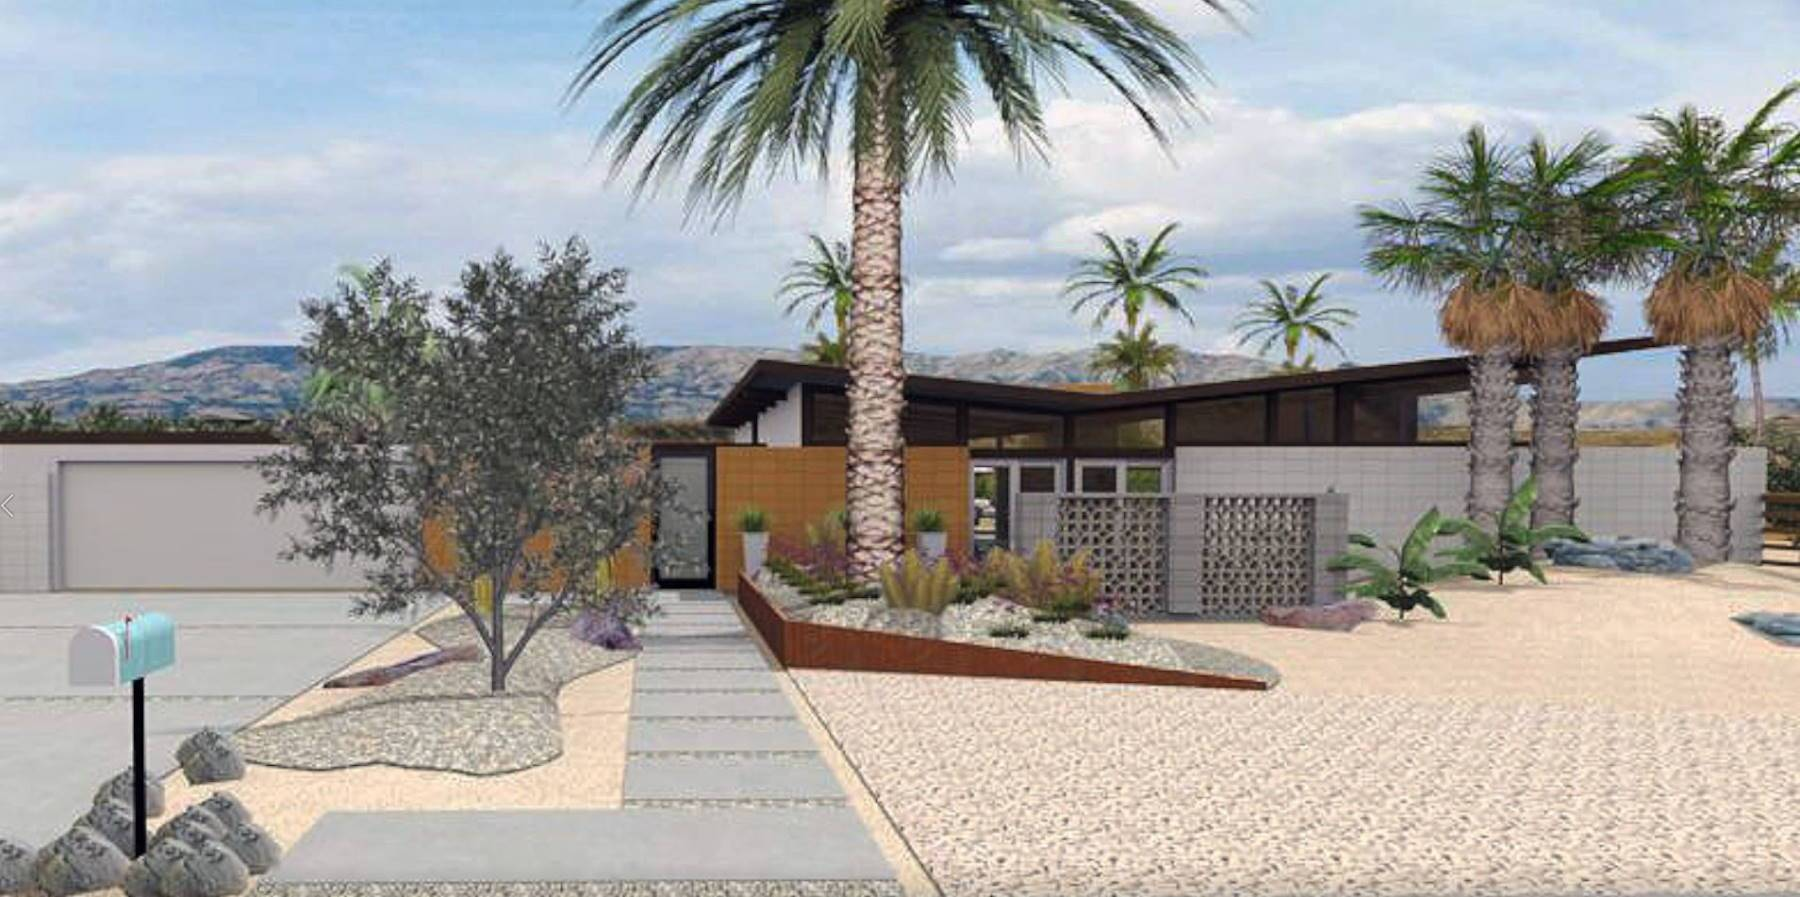 Residential design with a butterfly roof and a backyard breeze block.